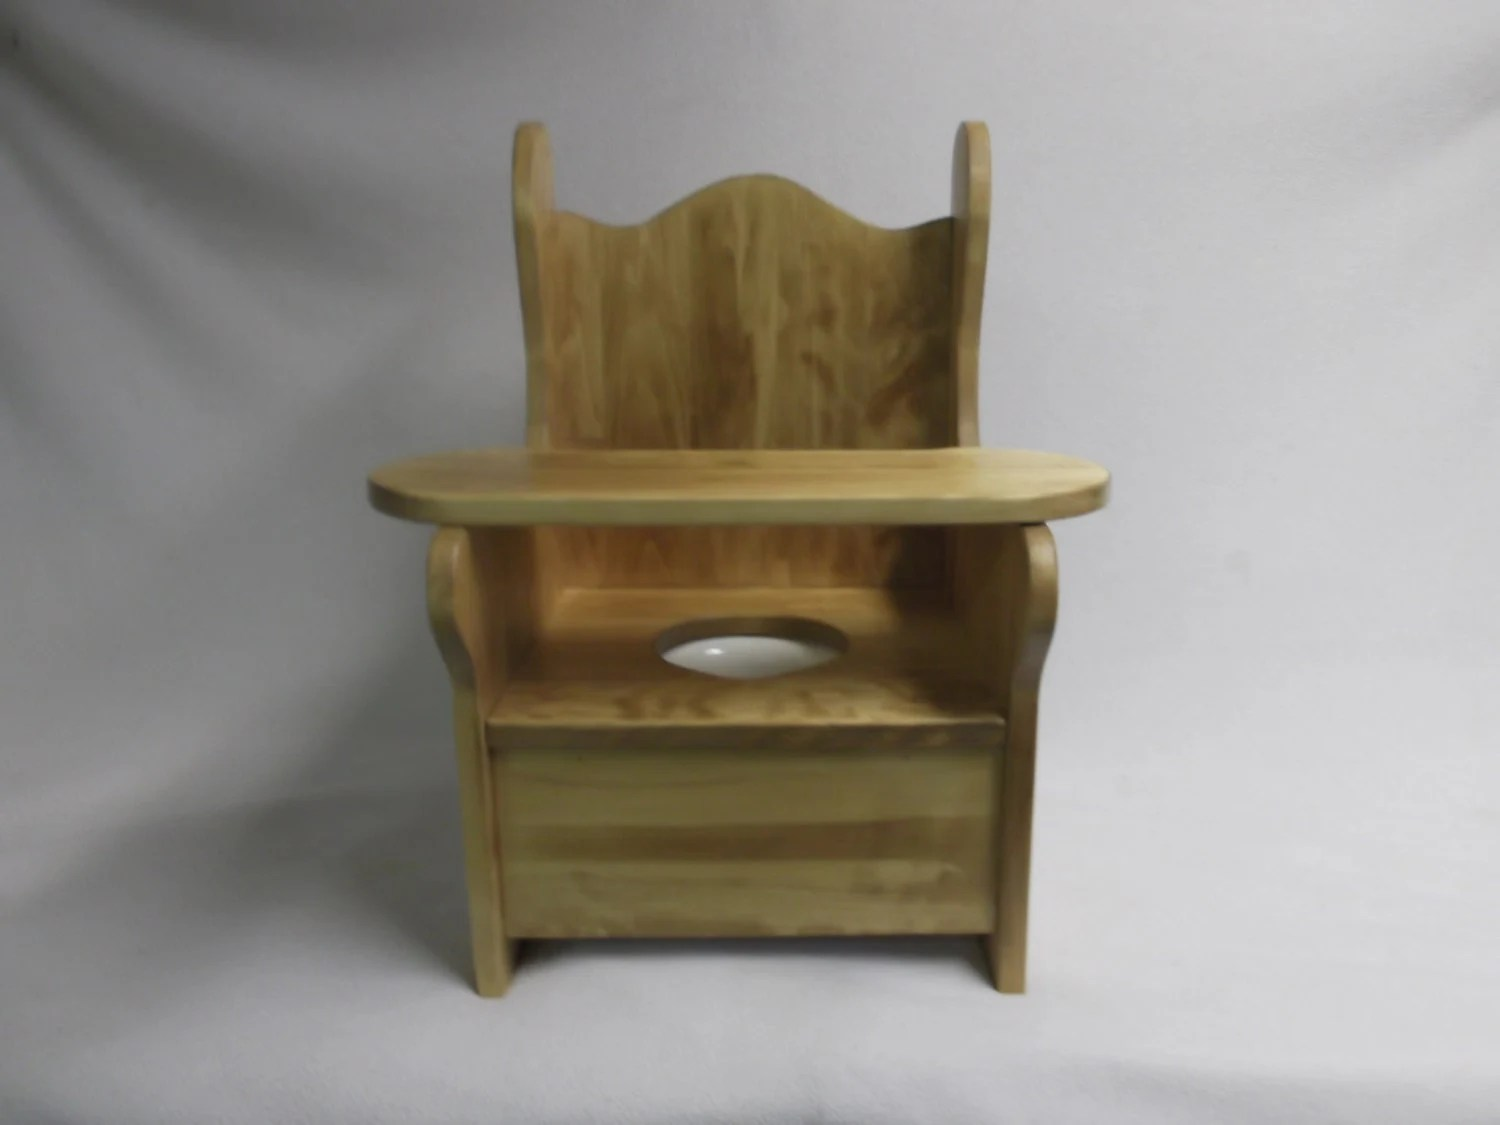 wooden potty training chair club covers for sale large with tray by wonderwoodshop on etsy